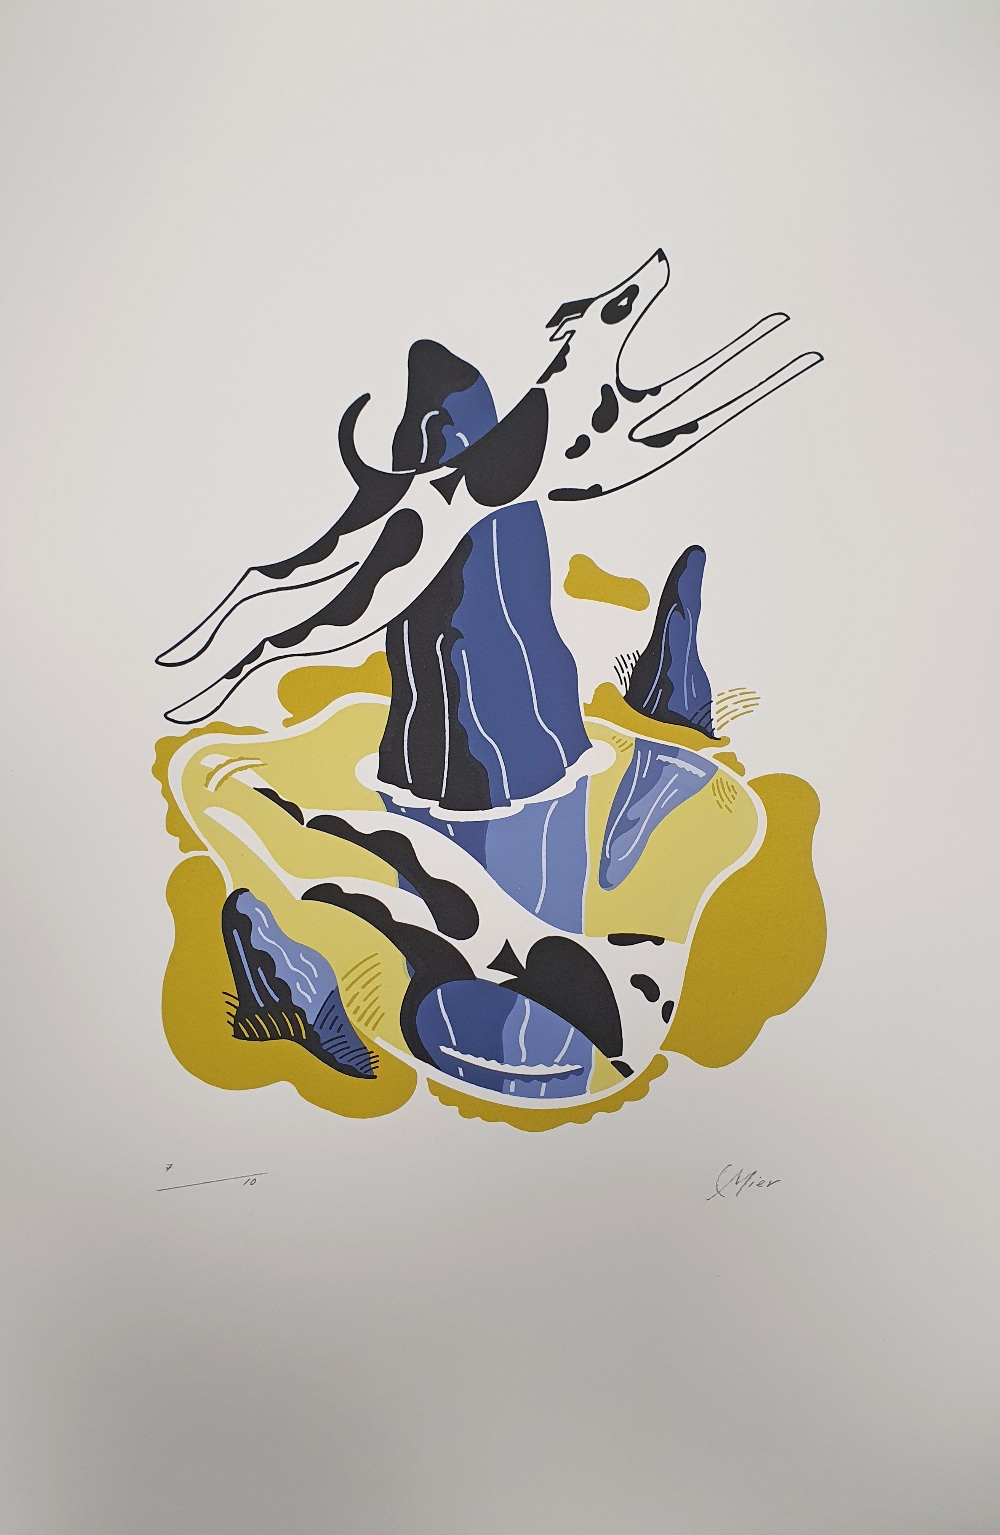 AMENDED Colin Mier (British). 'Two of Spades', one limited edition screenprint. Signed and numbered